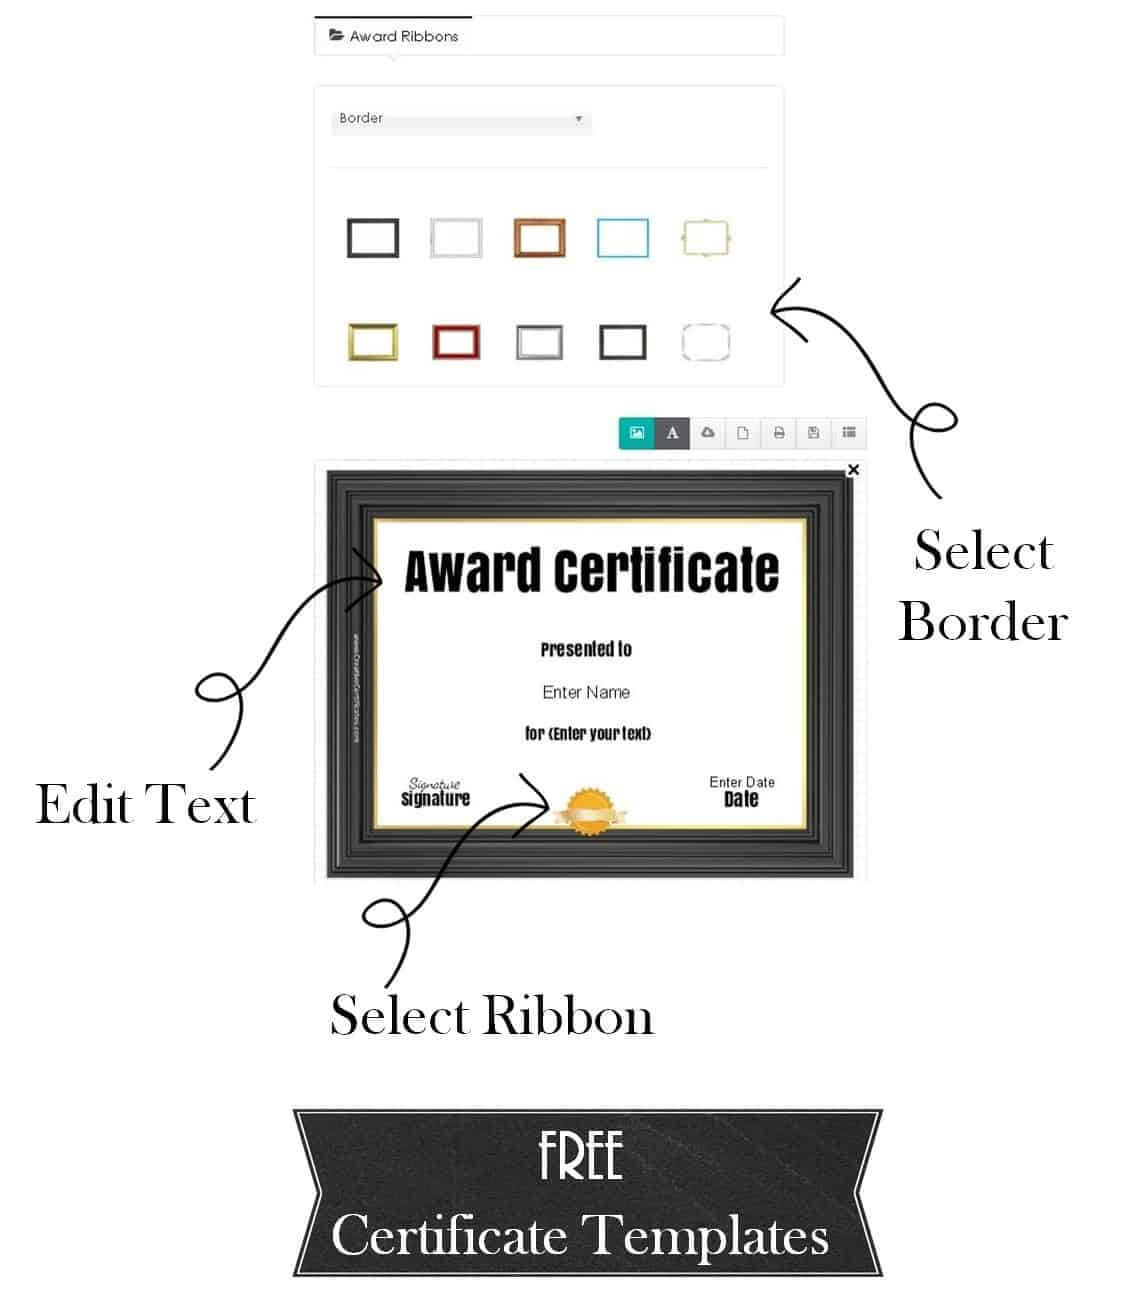 Free Custom Certificate Templates | Instant Download With Regard To Generic Certificate Template